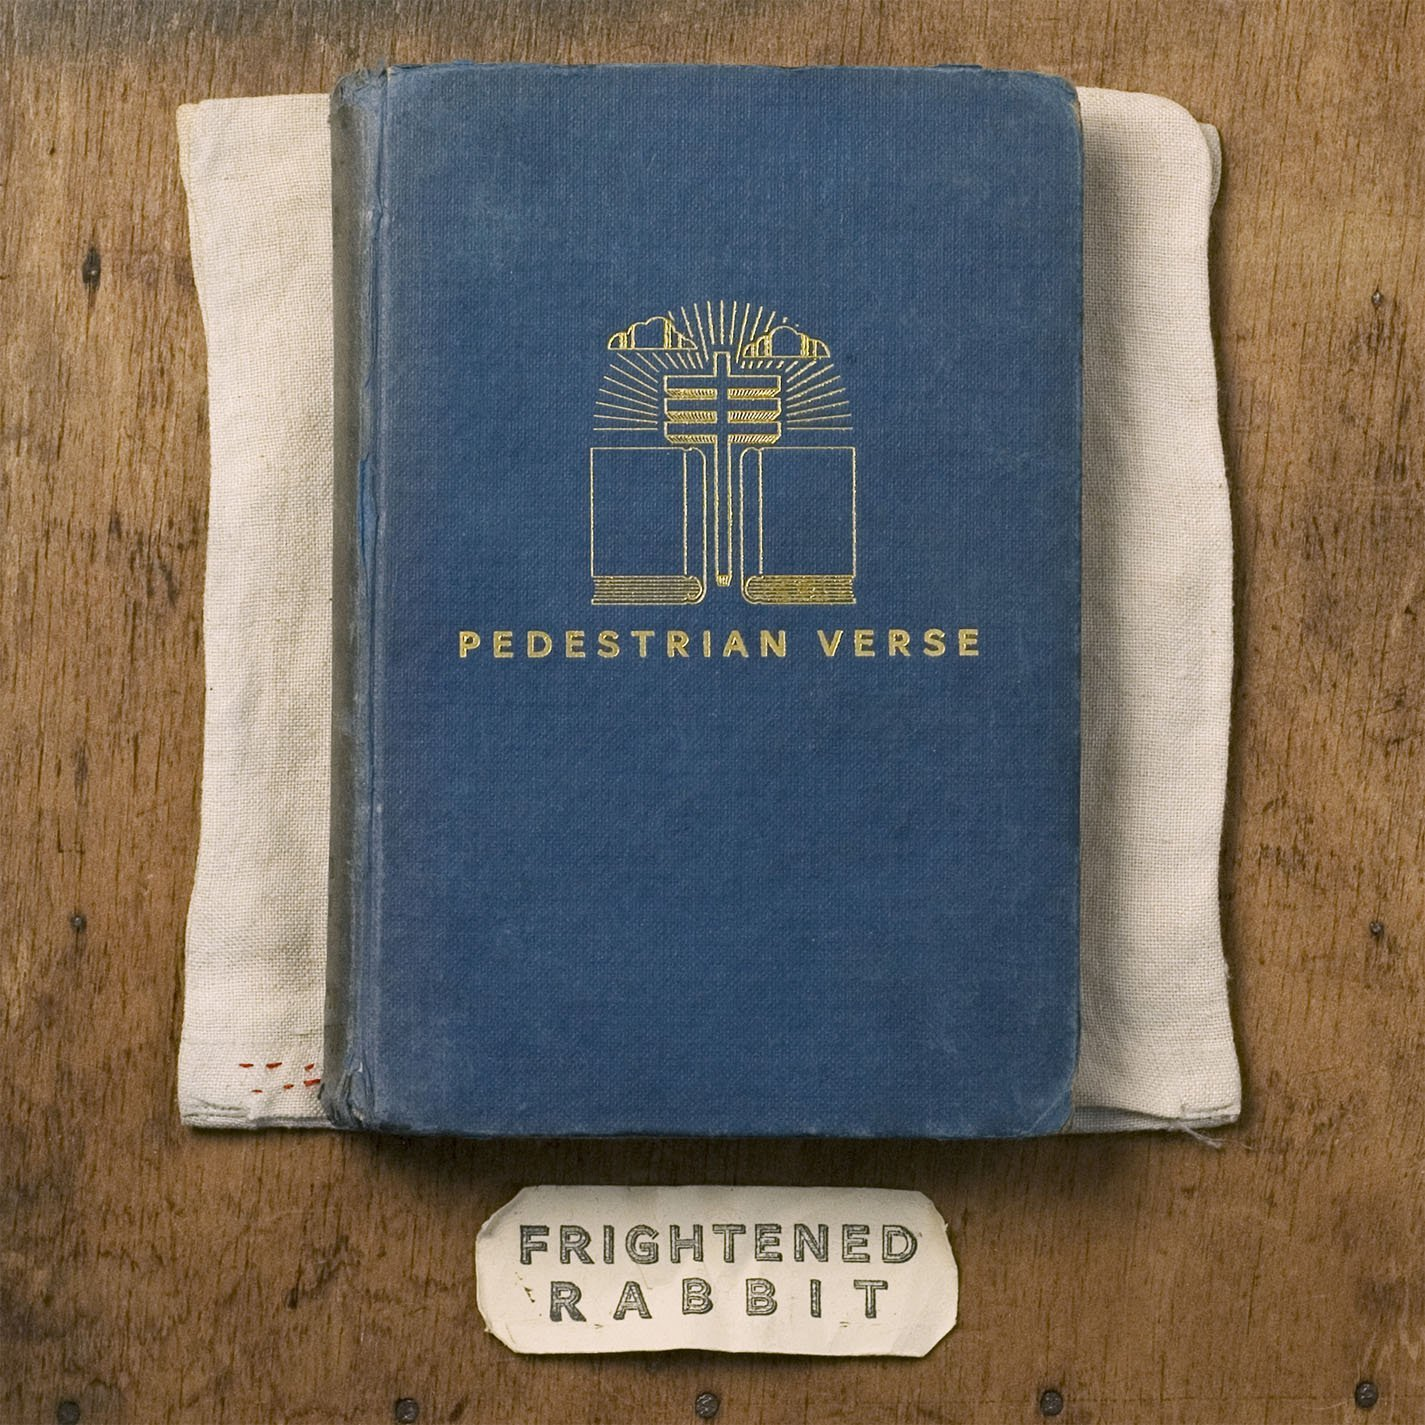 frightened rabbit - pedestrian verse 2013